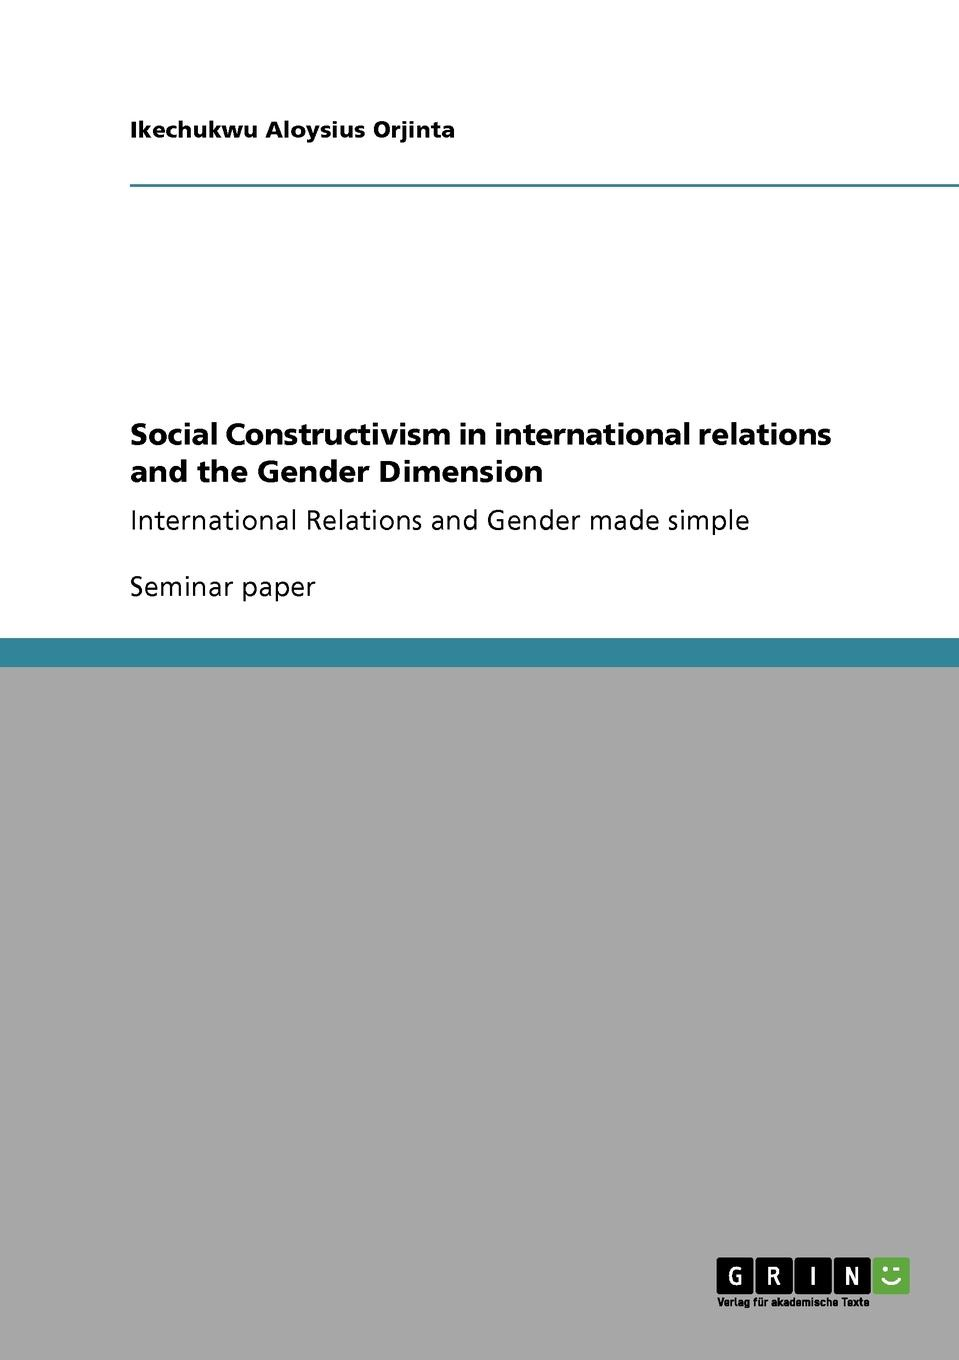 Ikechukwu Aloysius Orjinta Social Constructivism in international relations and the Gender Dimension introduction to international relations